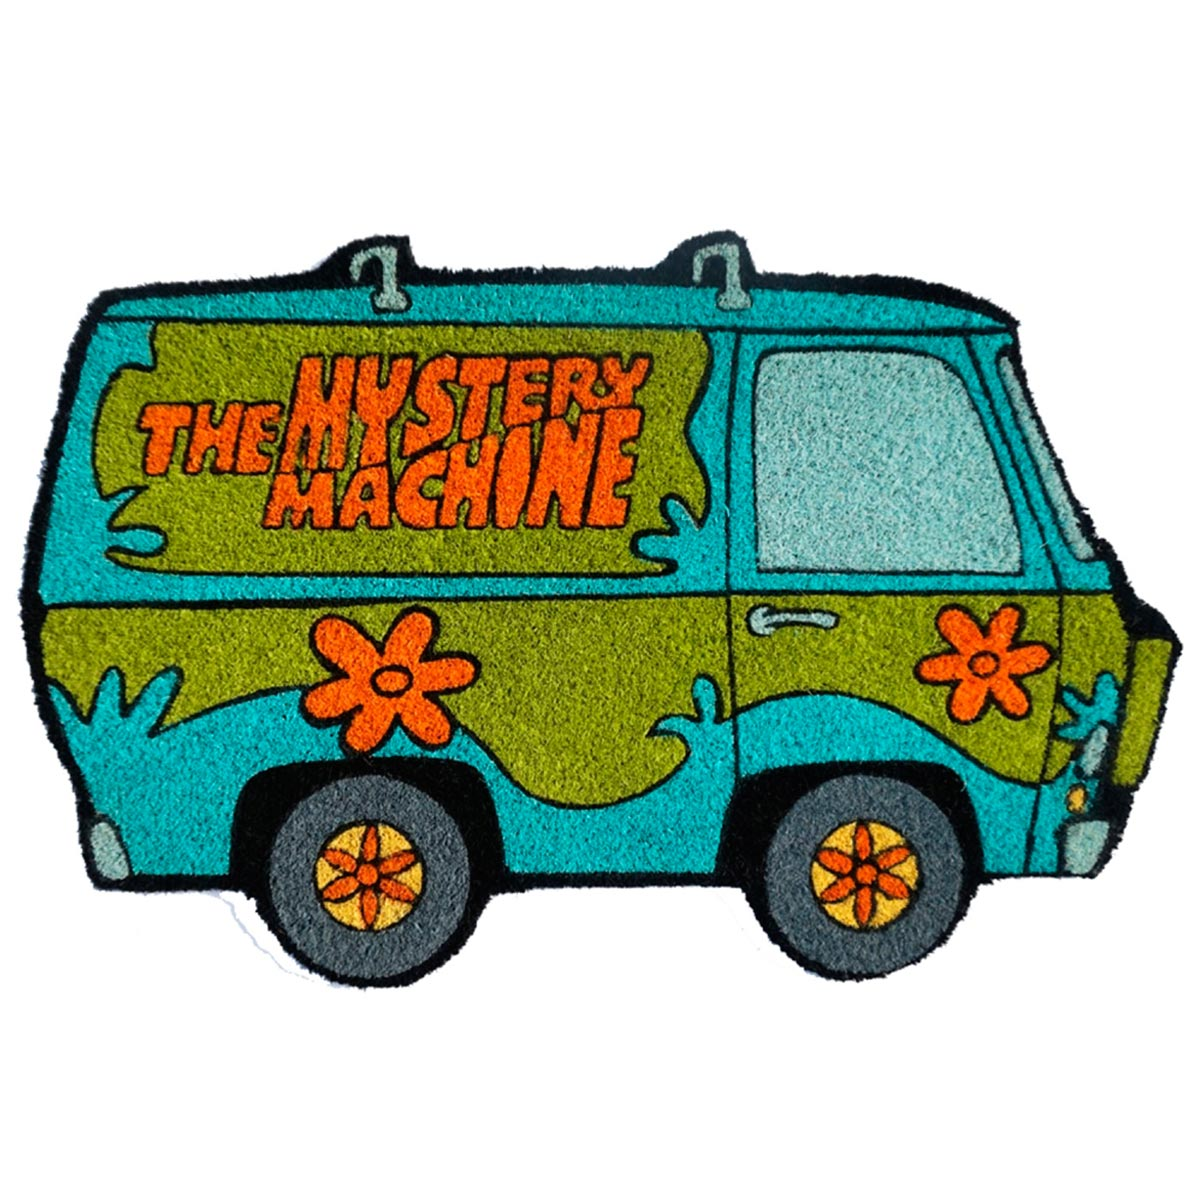 Capacho Scooby-Doo The Mystery Machine